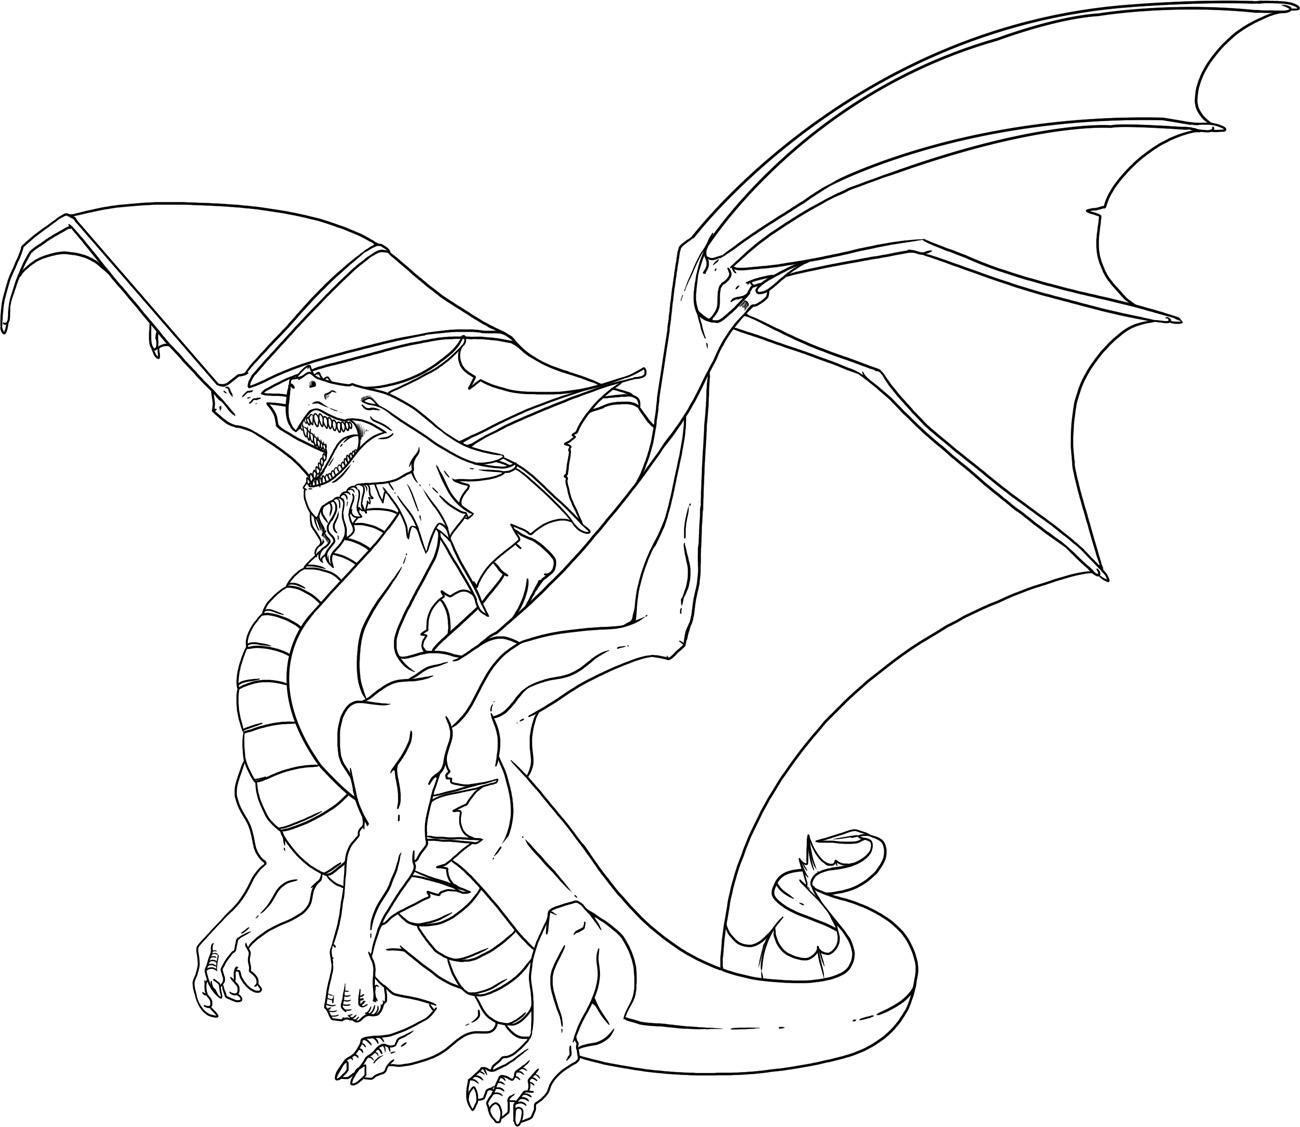 realistic fire breathing dragon coloring pages | Just Colorings